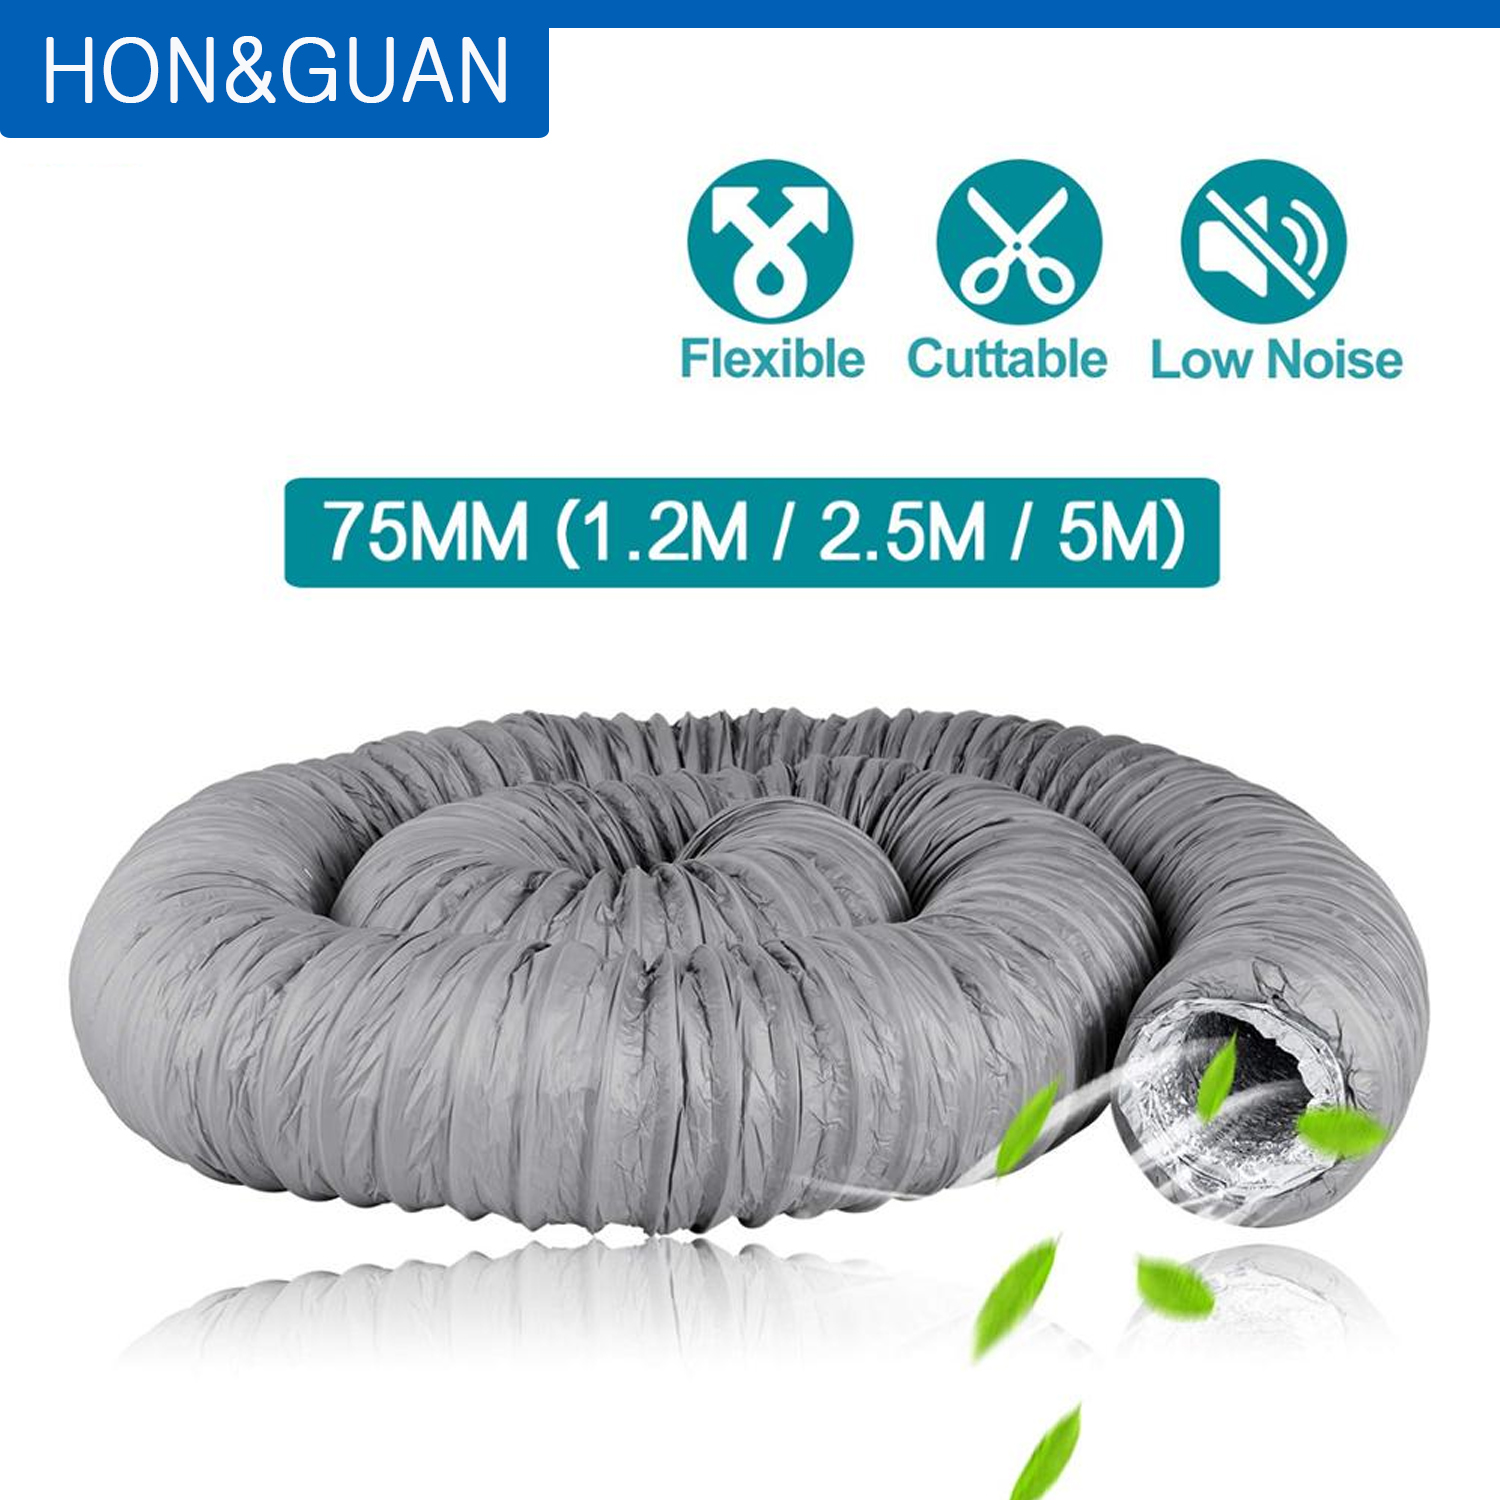 Hon/&Guan Duct Silencer Noise Reducer Hose Silencer for Inline Duct Fan 6 inch